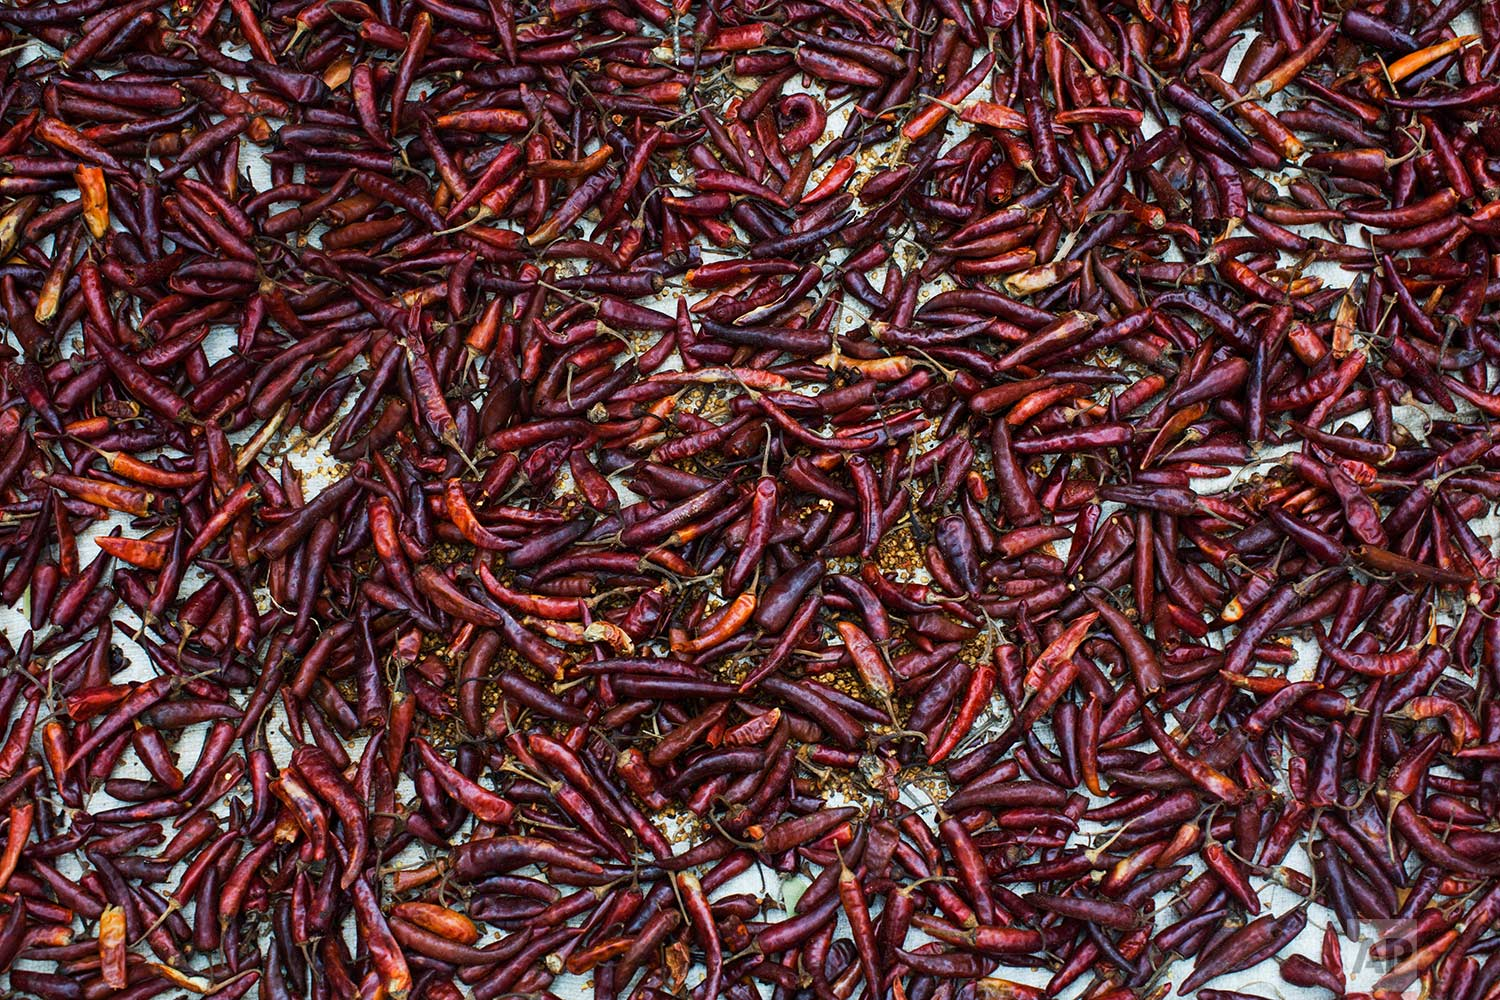 In this Thursday, Sept. 7, 2017 photo, red chilis are spread on a plastic sheet carried across the border from Myanmar into Bangladesh by fleeing Rohingya Muslim in Teknaf area. (AP Photo/Bernat Armangue)